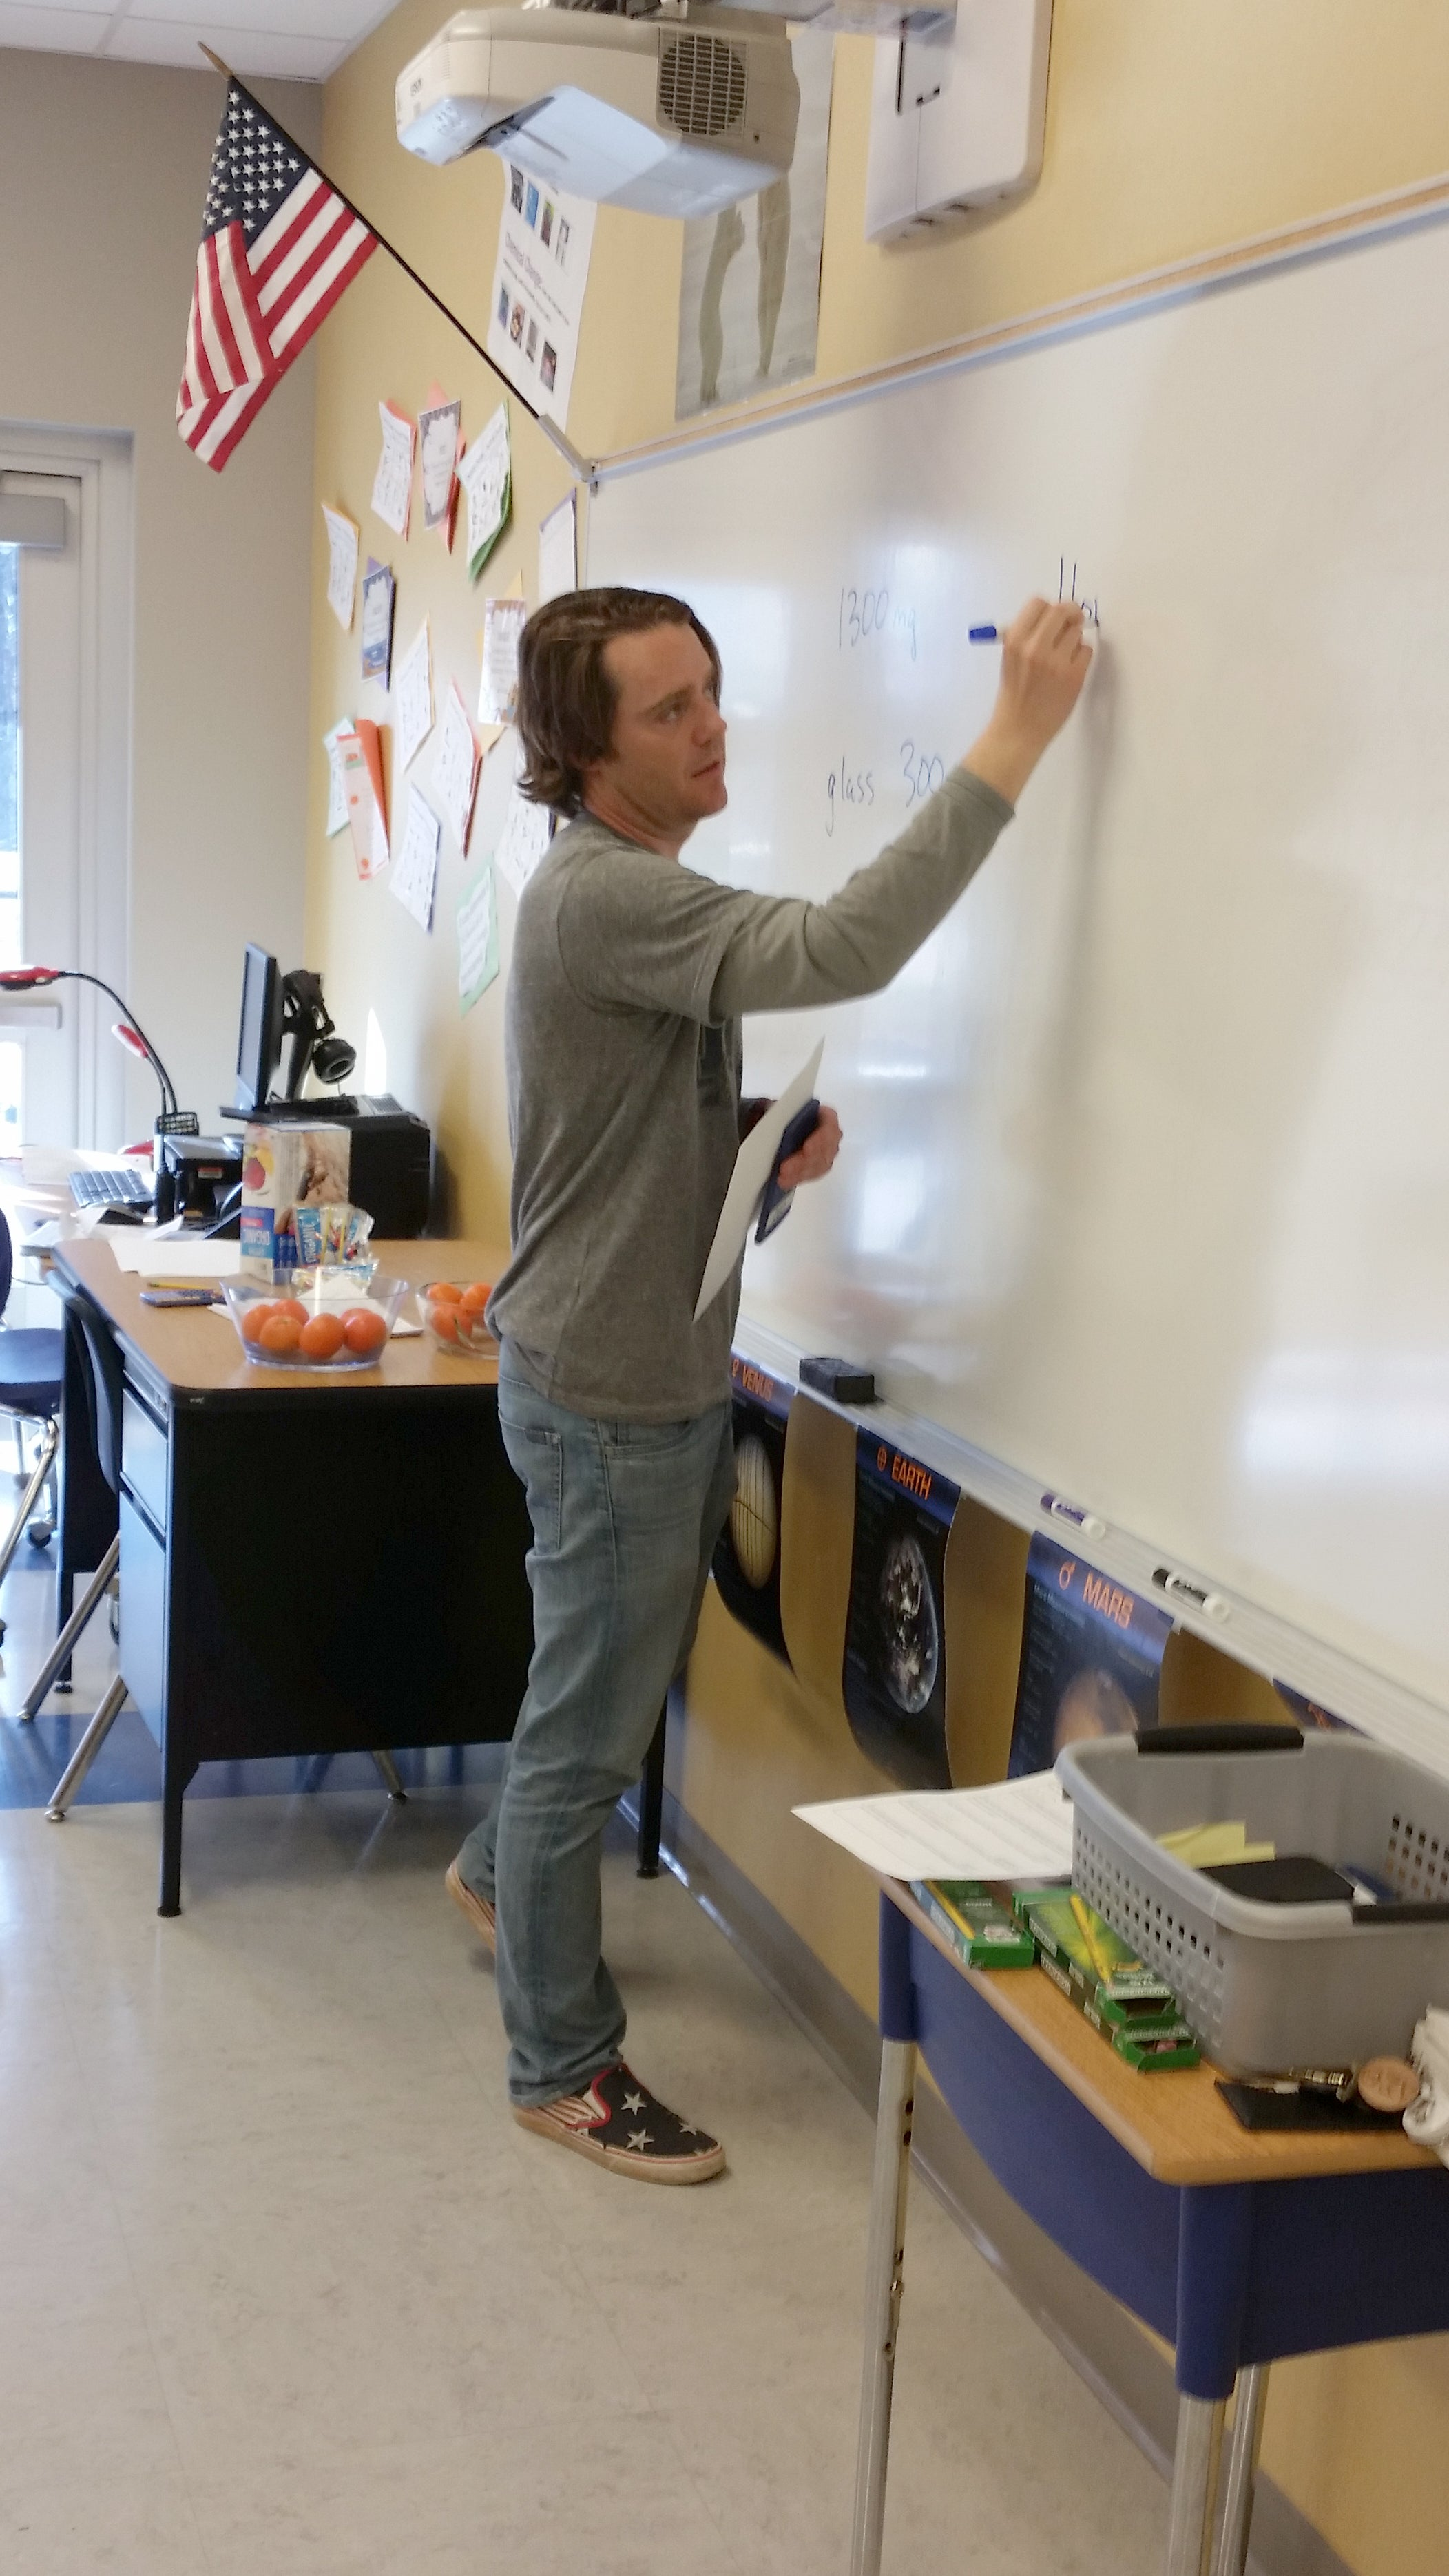 Andrew Van Fossen writes on a whiteboard in a classroom.